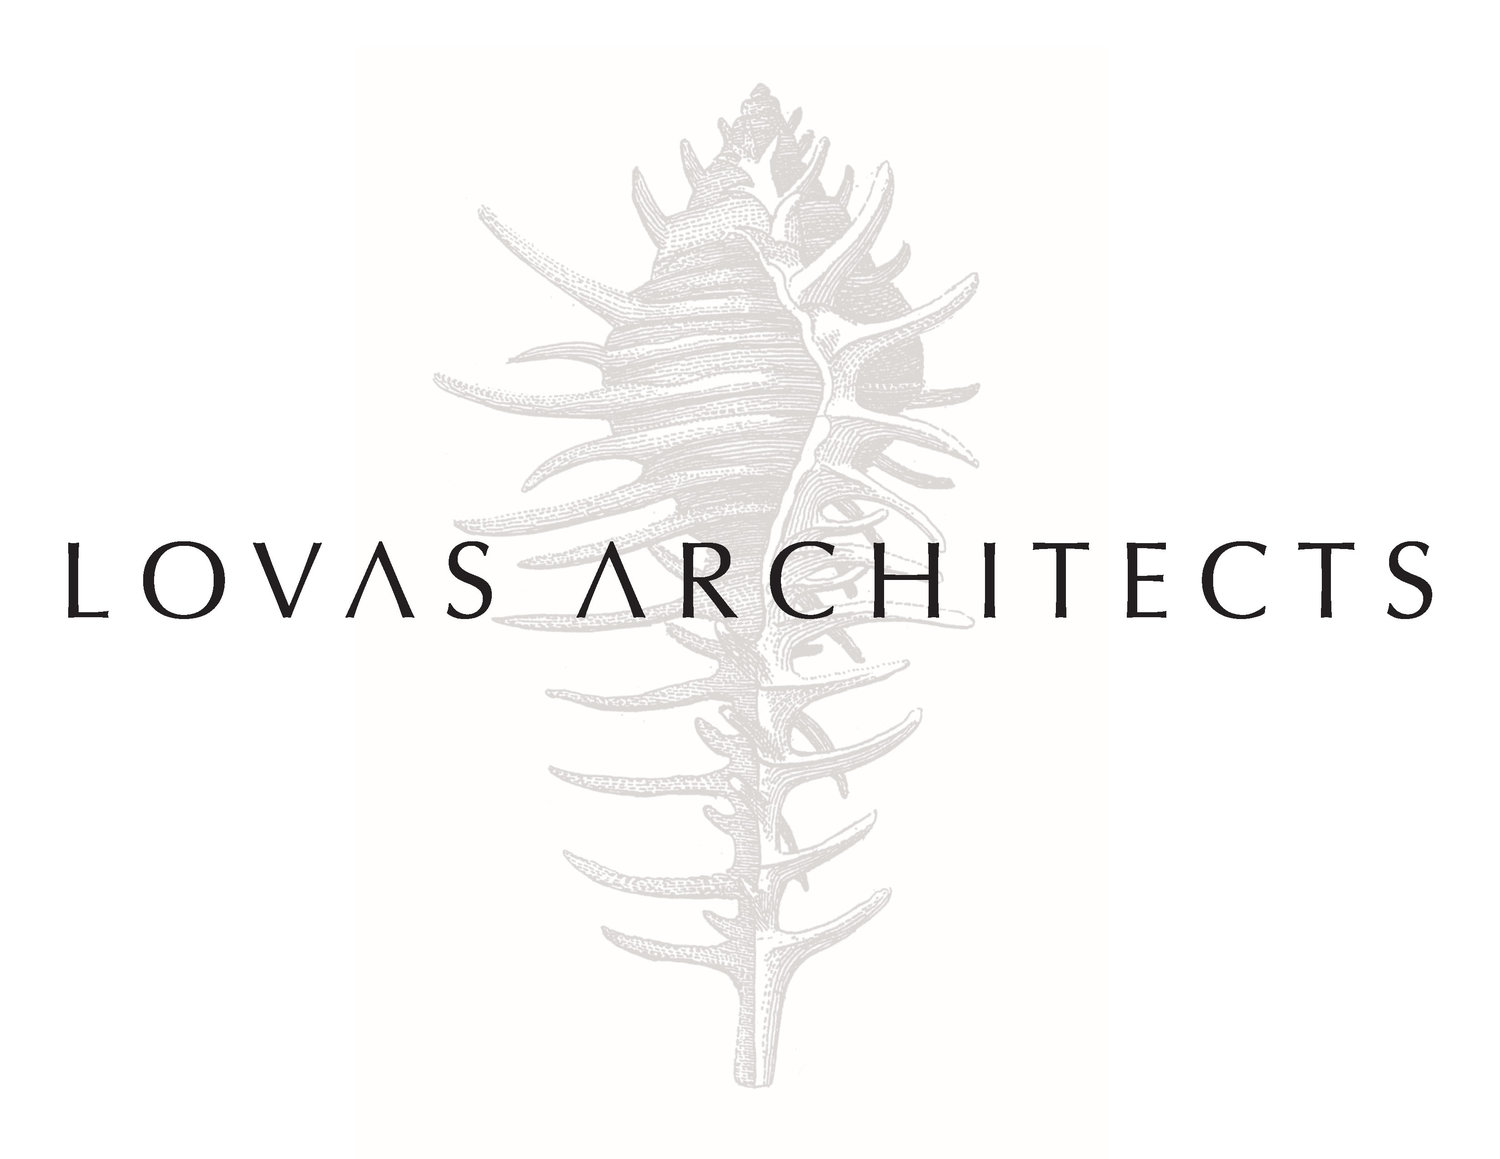 LOVAS ARCHITECTS, LLC